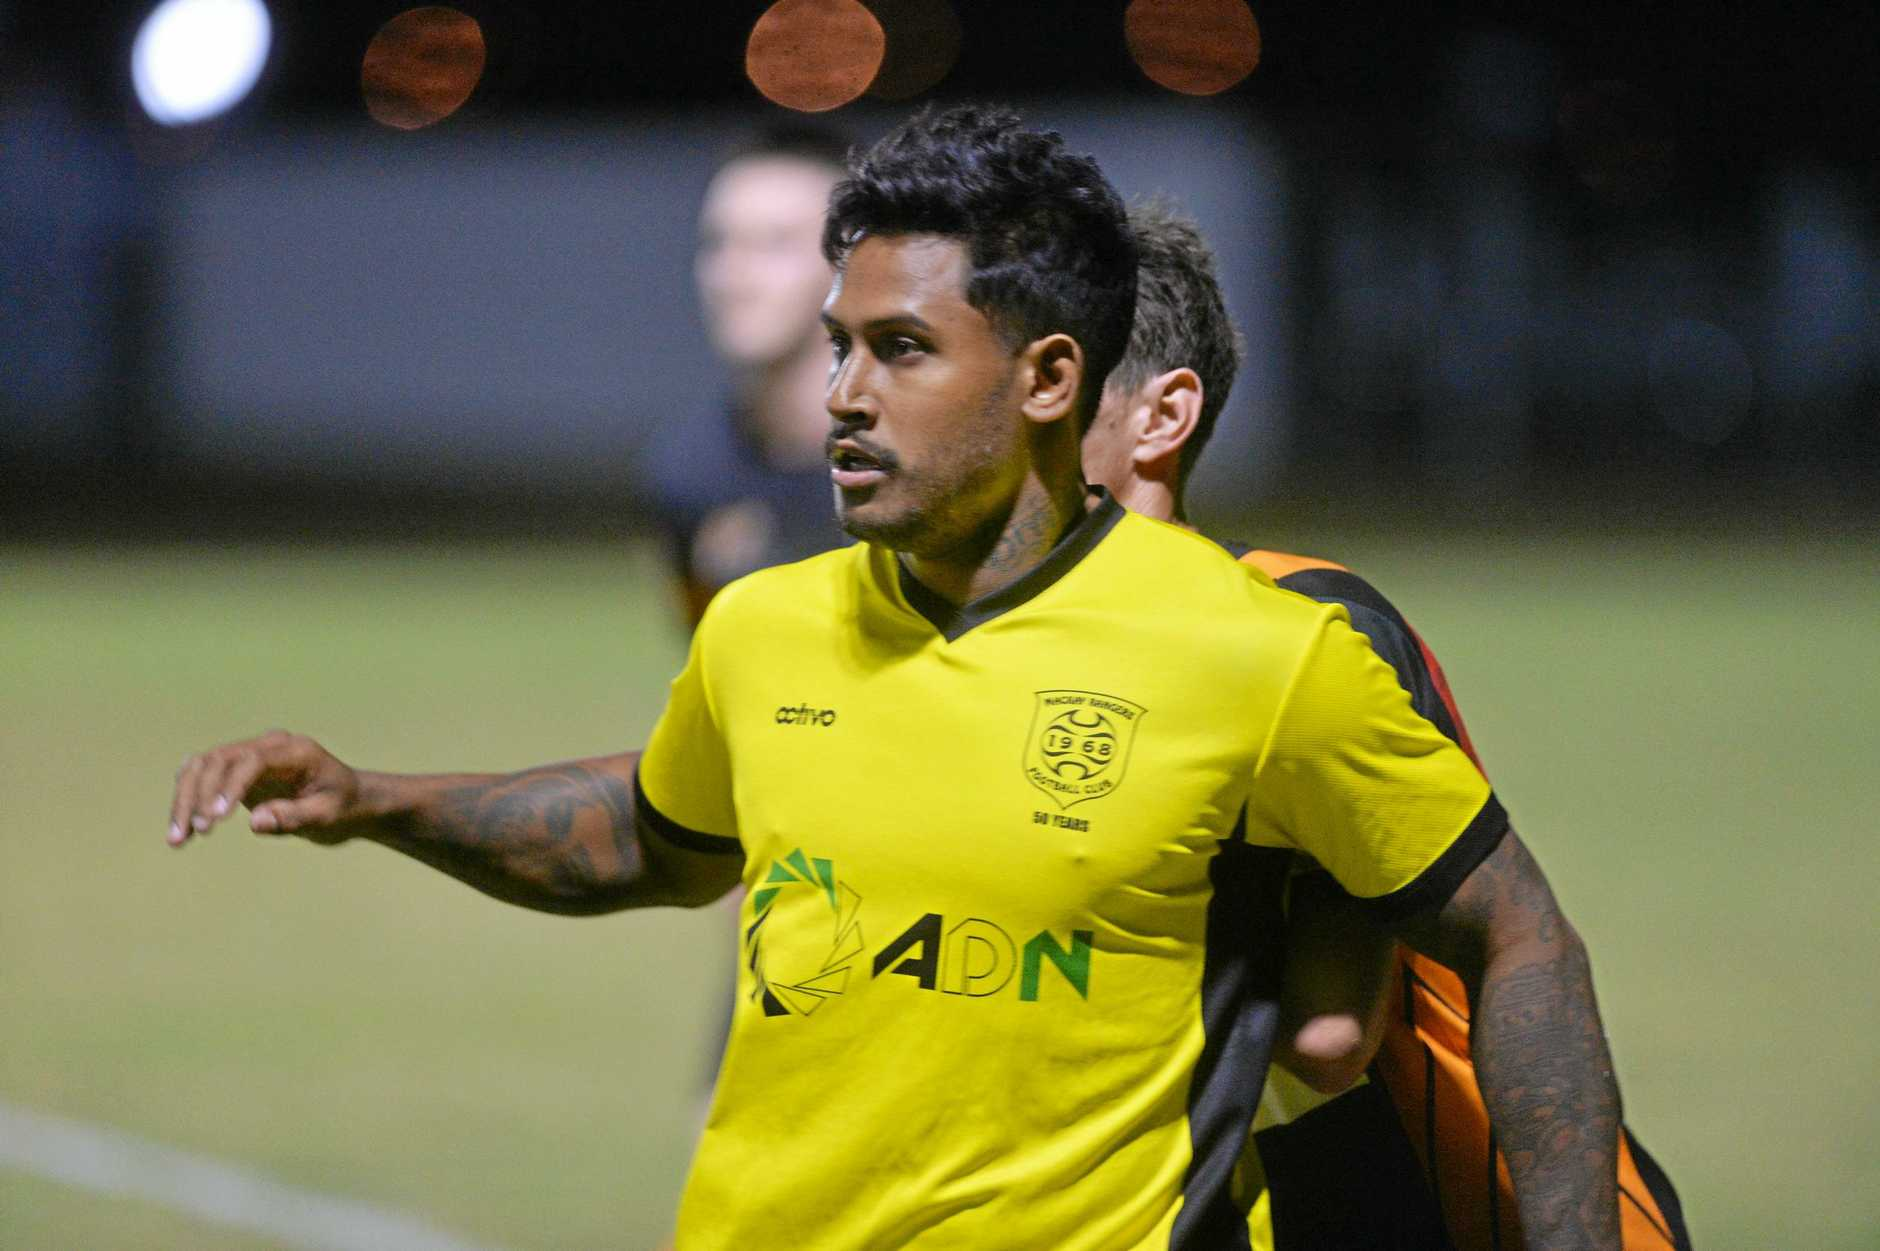 Former North Queensland Cowboy Ben Barba has signed with a local soccer club.